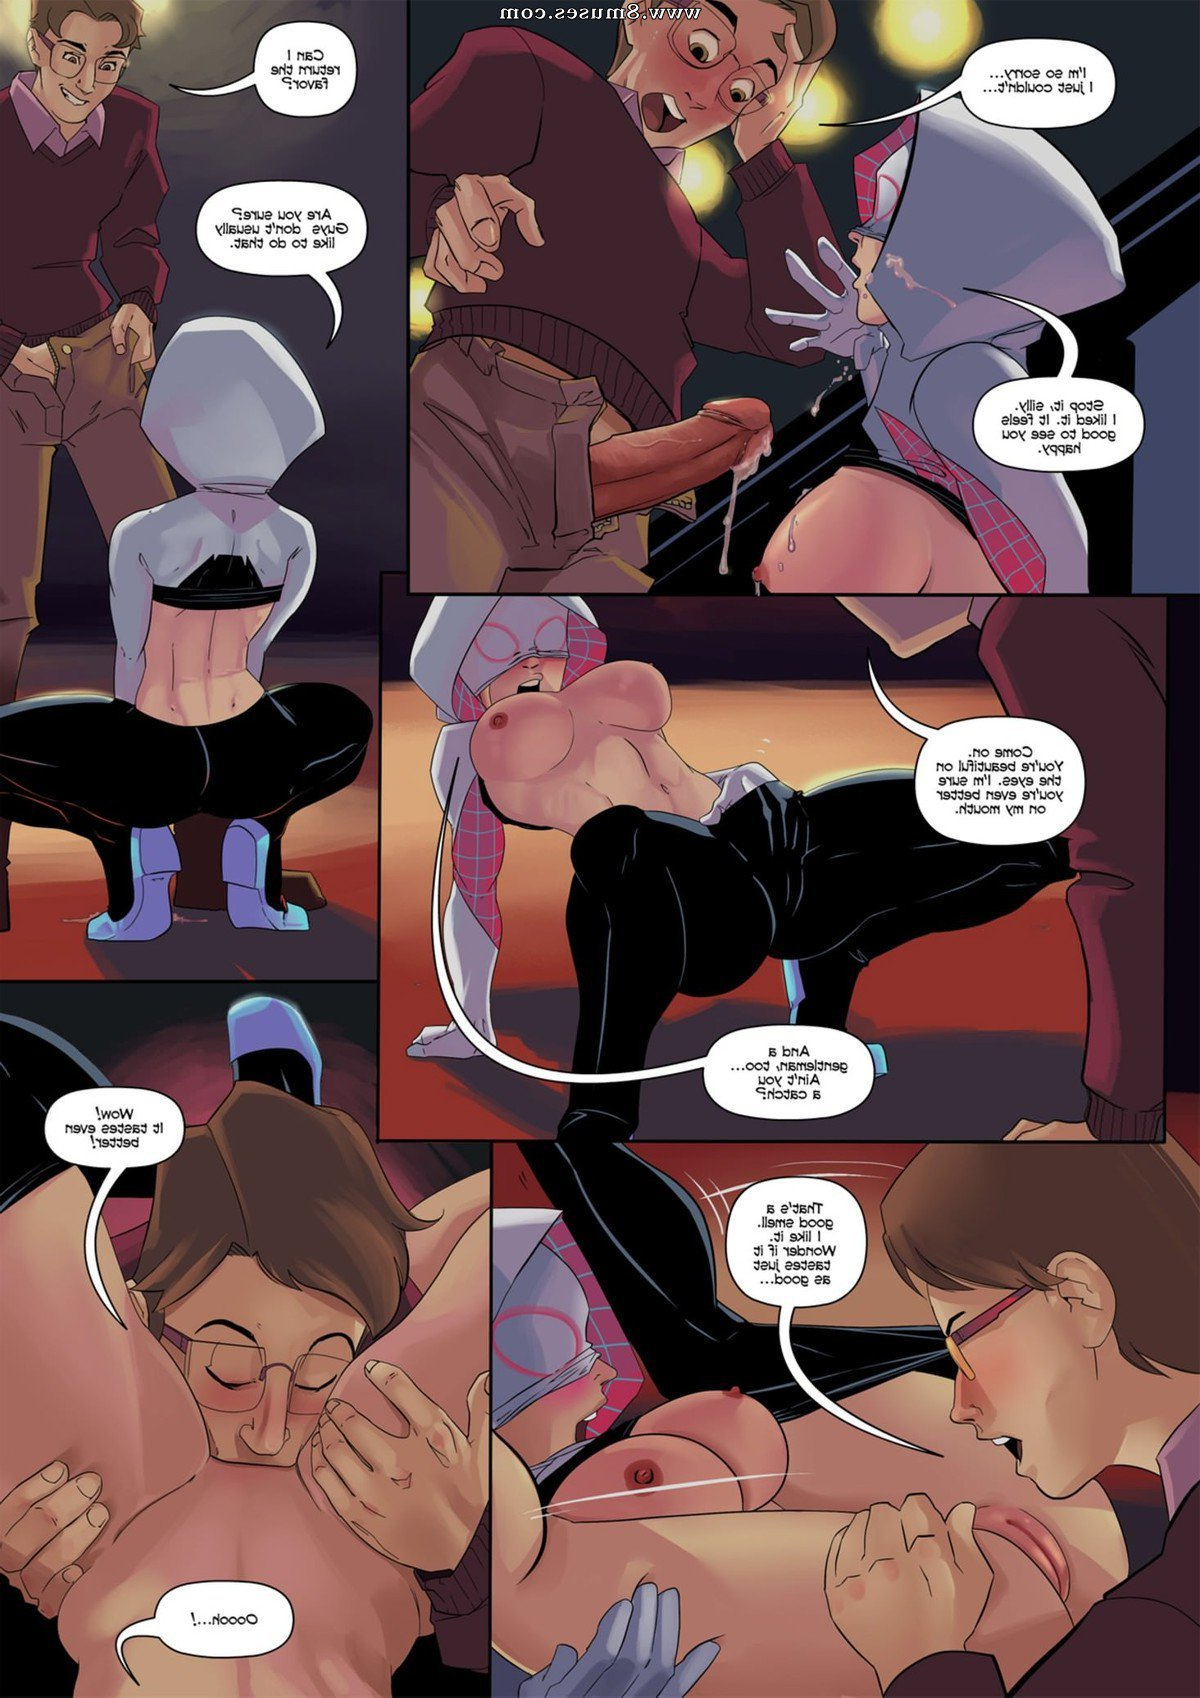 Tracy-Scops-Comics/SpiderGwen/Issue-1 SpiderGwen_-_Issue_1_8.jpg